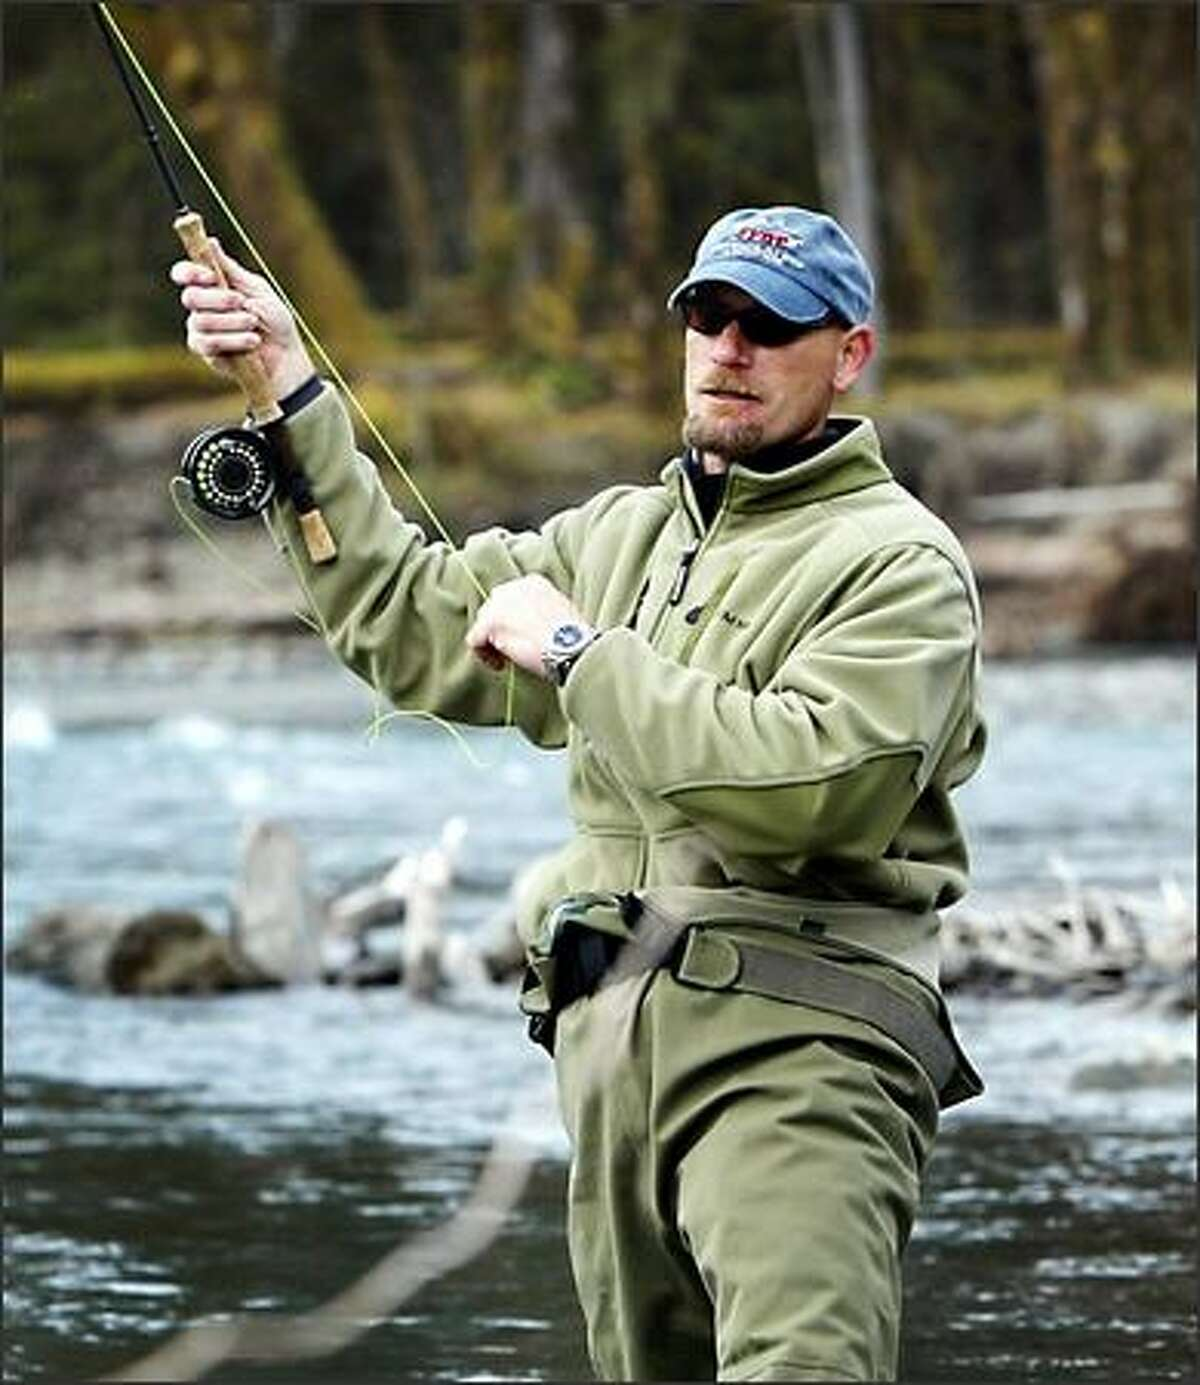 Former Mariners right-fielder Jay Buhner mends his line while drifting his line through a run on the Hoh River.